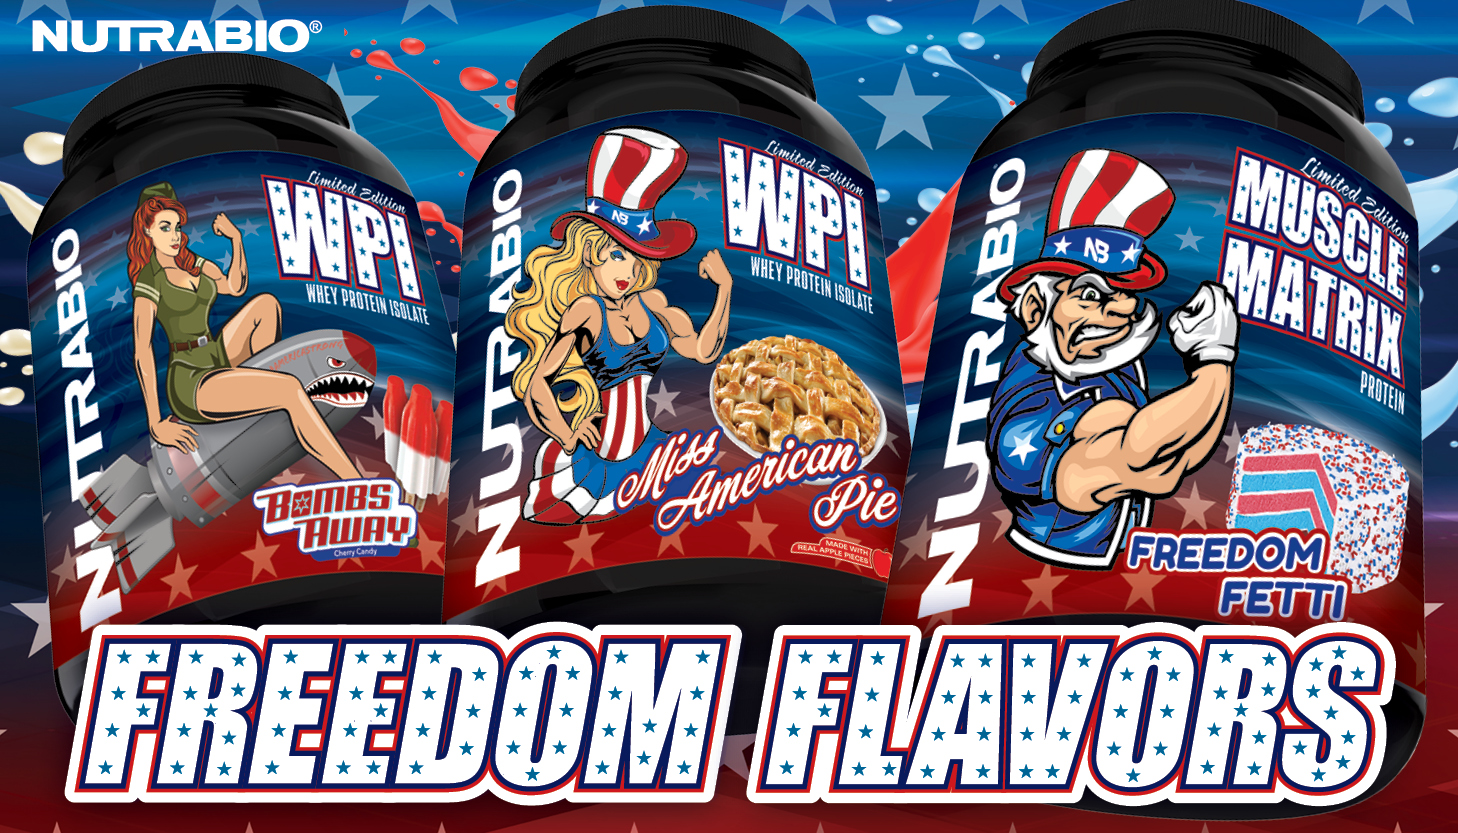 Get a Taste of FREEDOM with NutraBio's 4th of July Freedom Flavors!